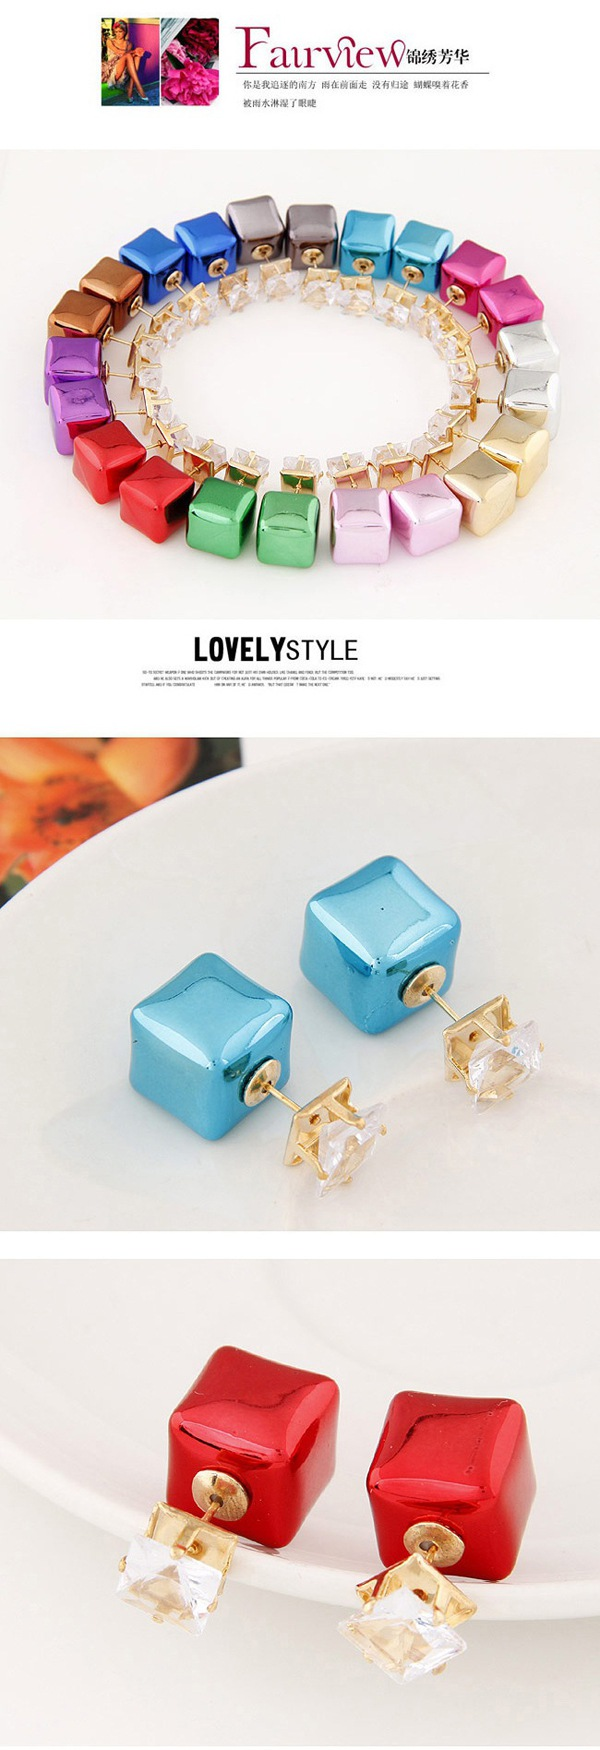 Anting Tusuk T6D7EF